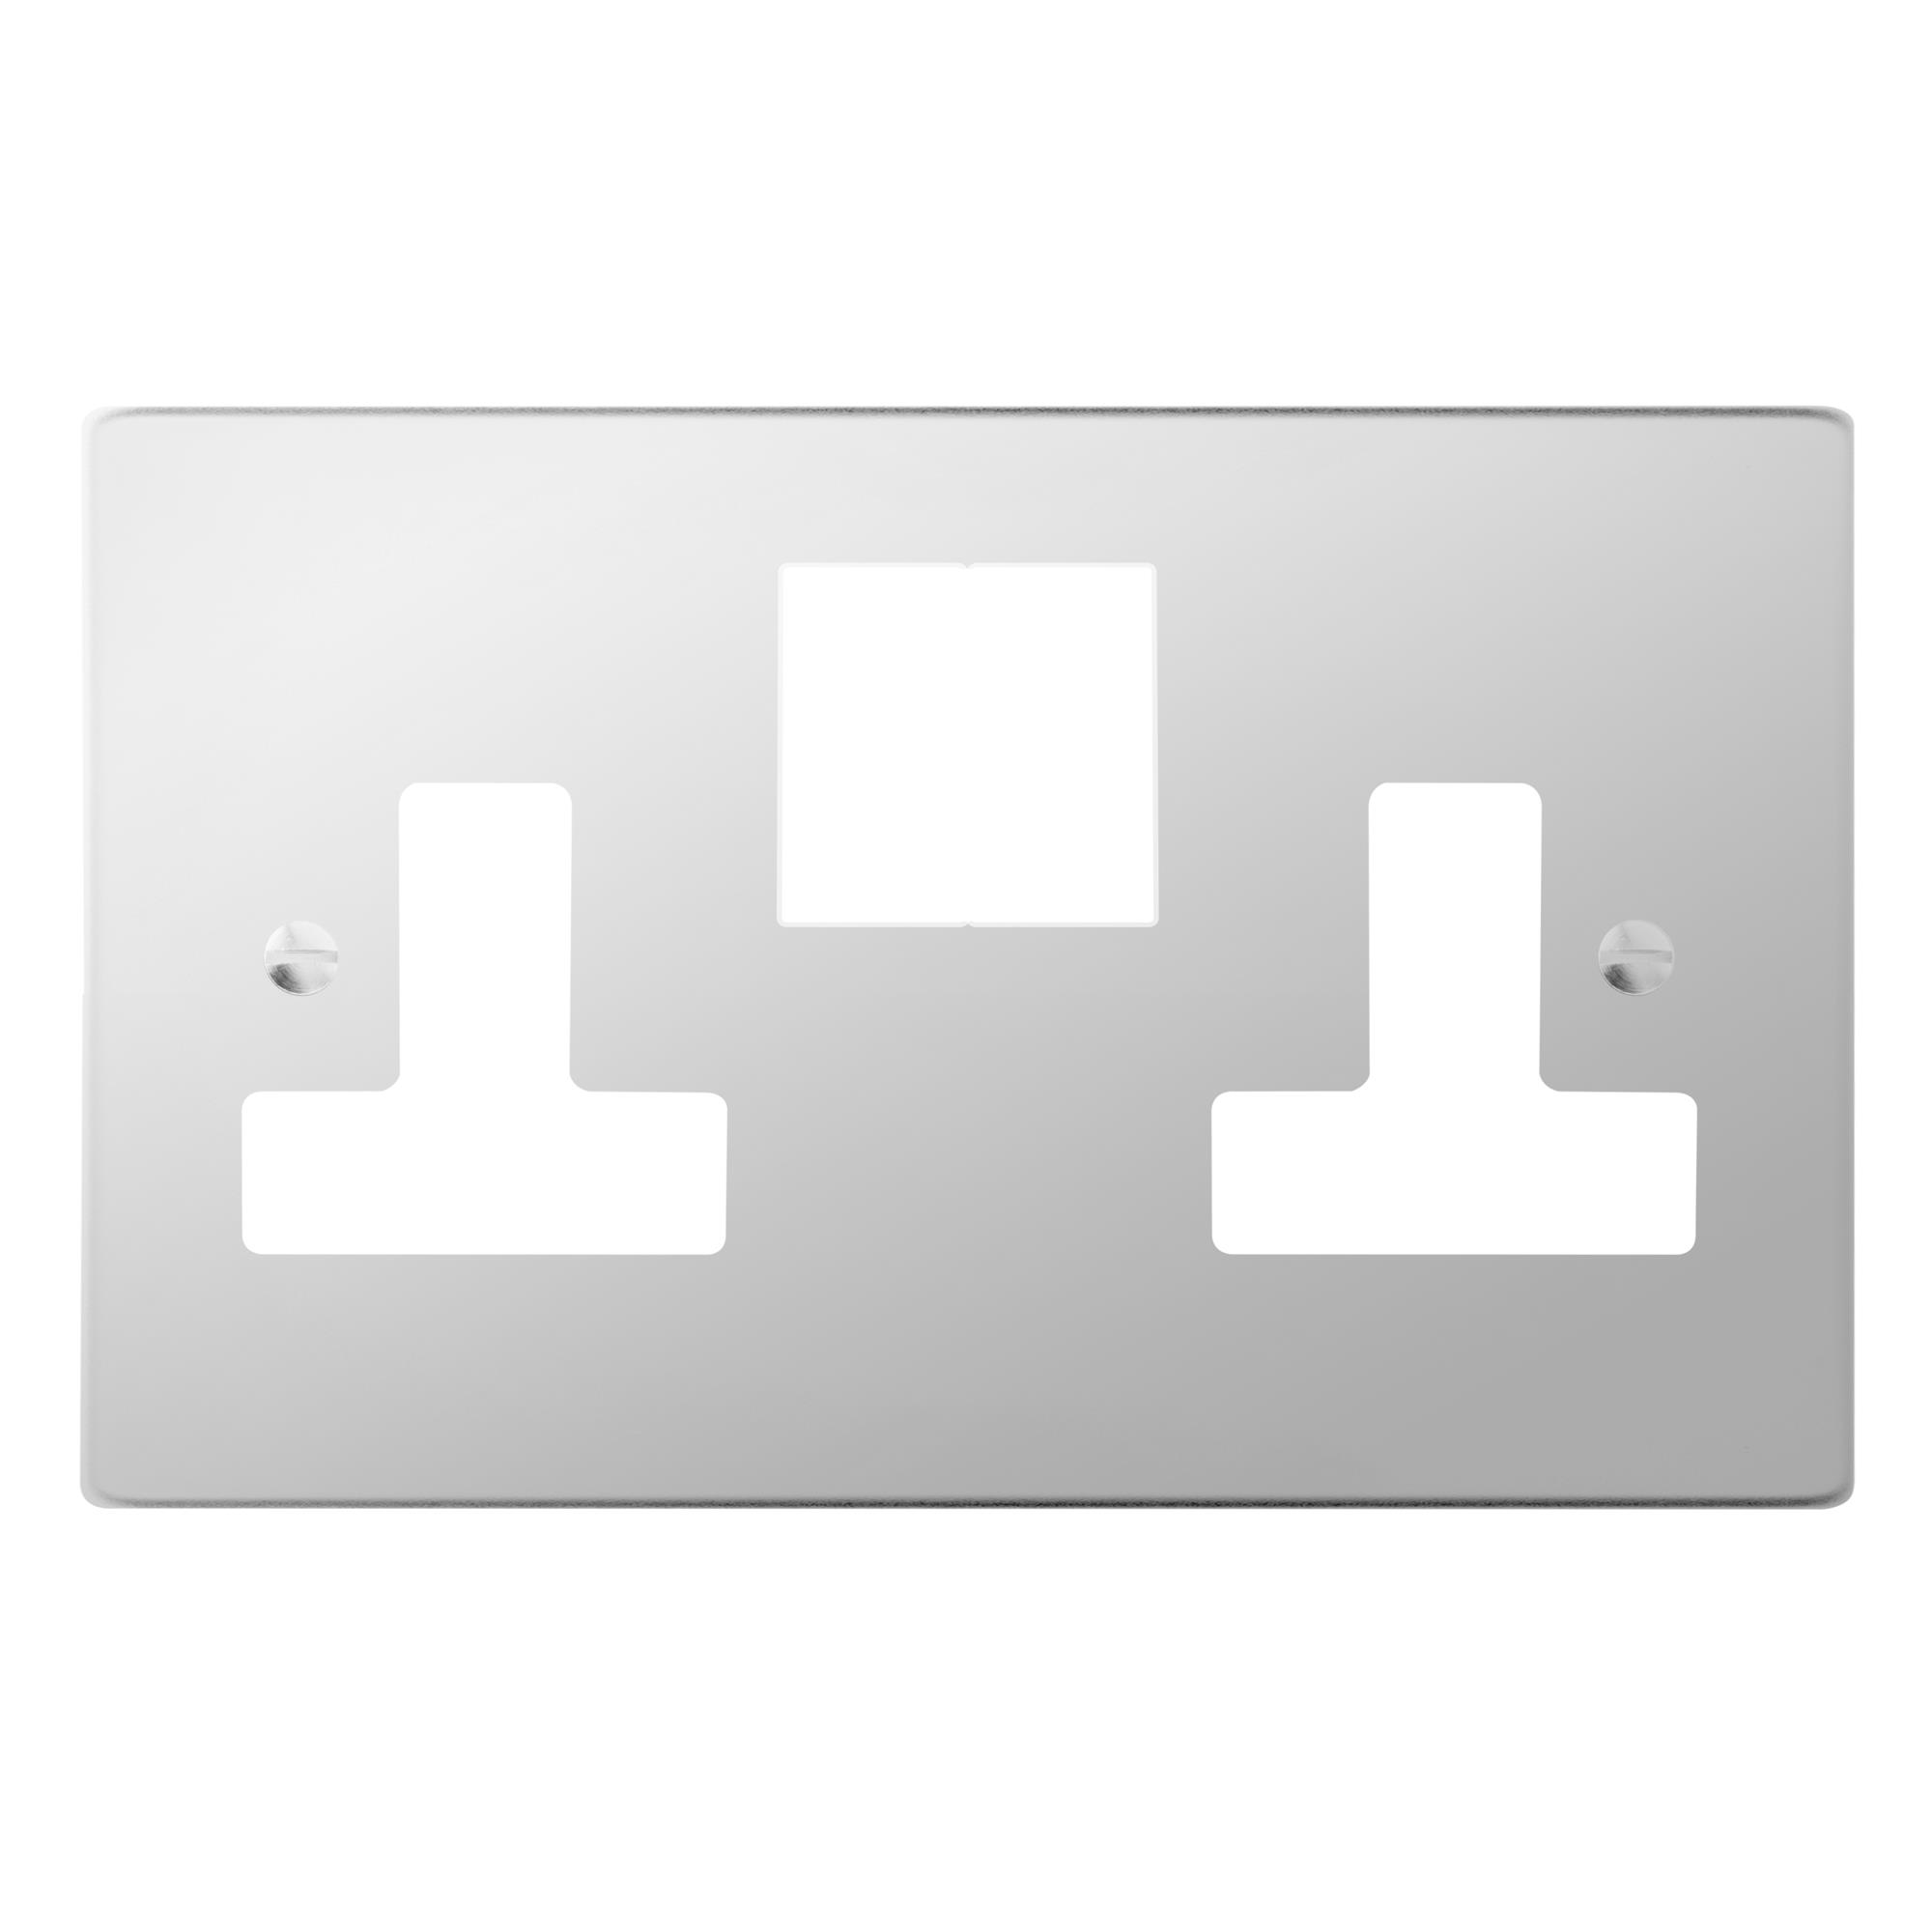 Socket Plate Delectable Switched Socket Outlet 2 Gang 13 Amp Plate Only Polished Review